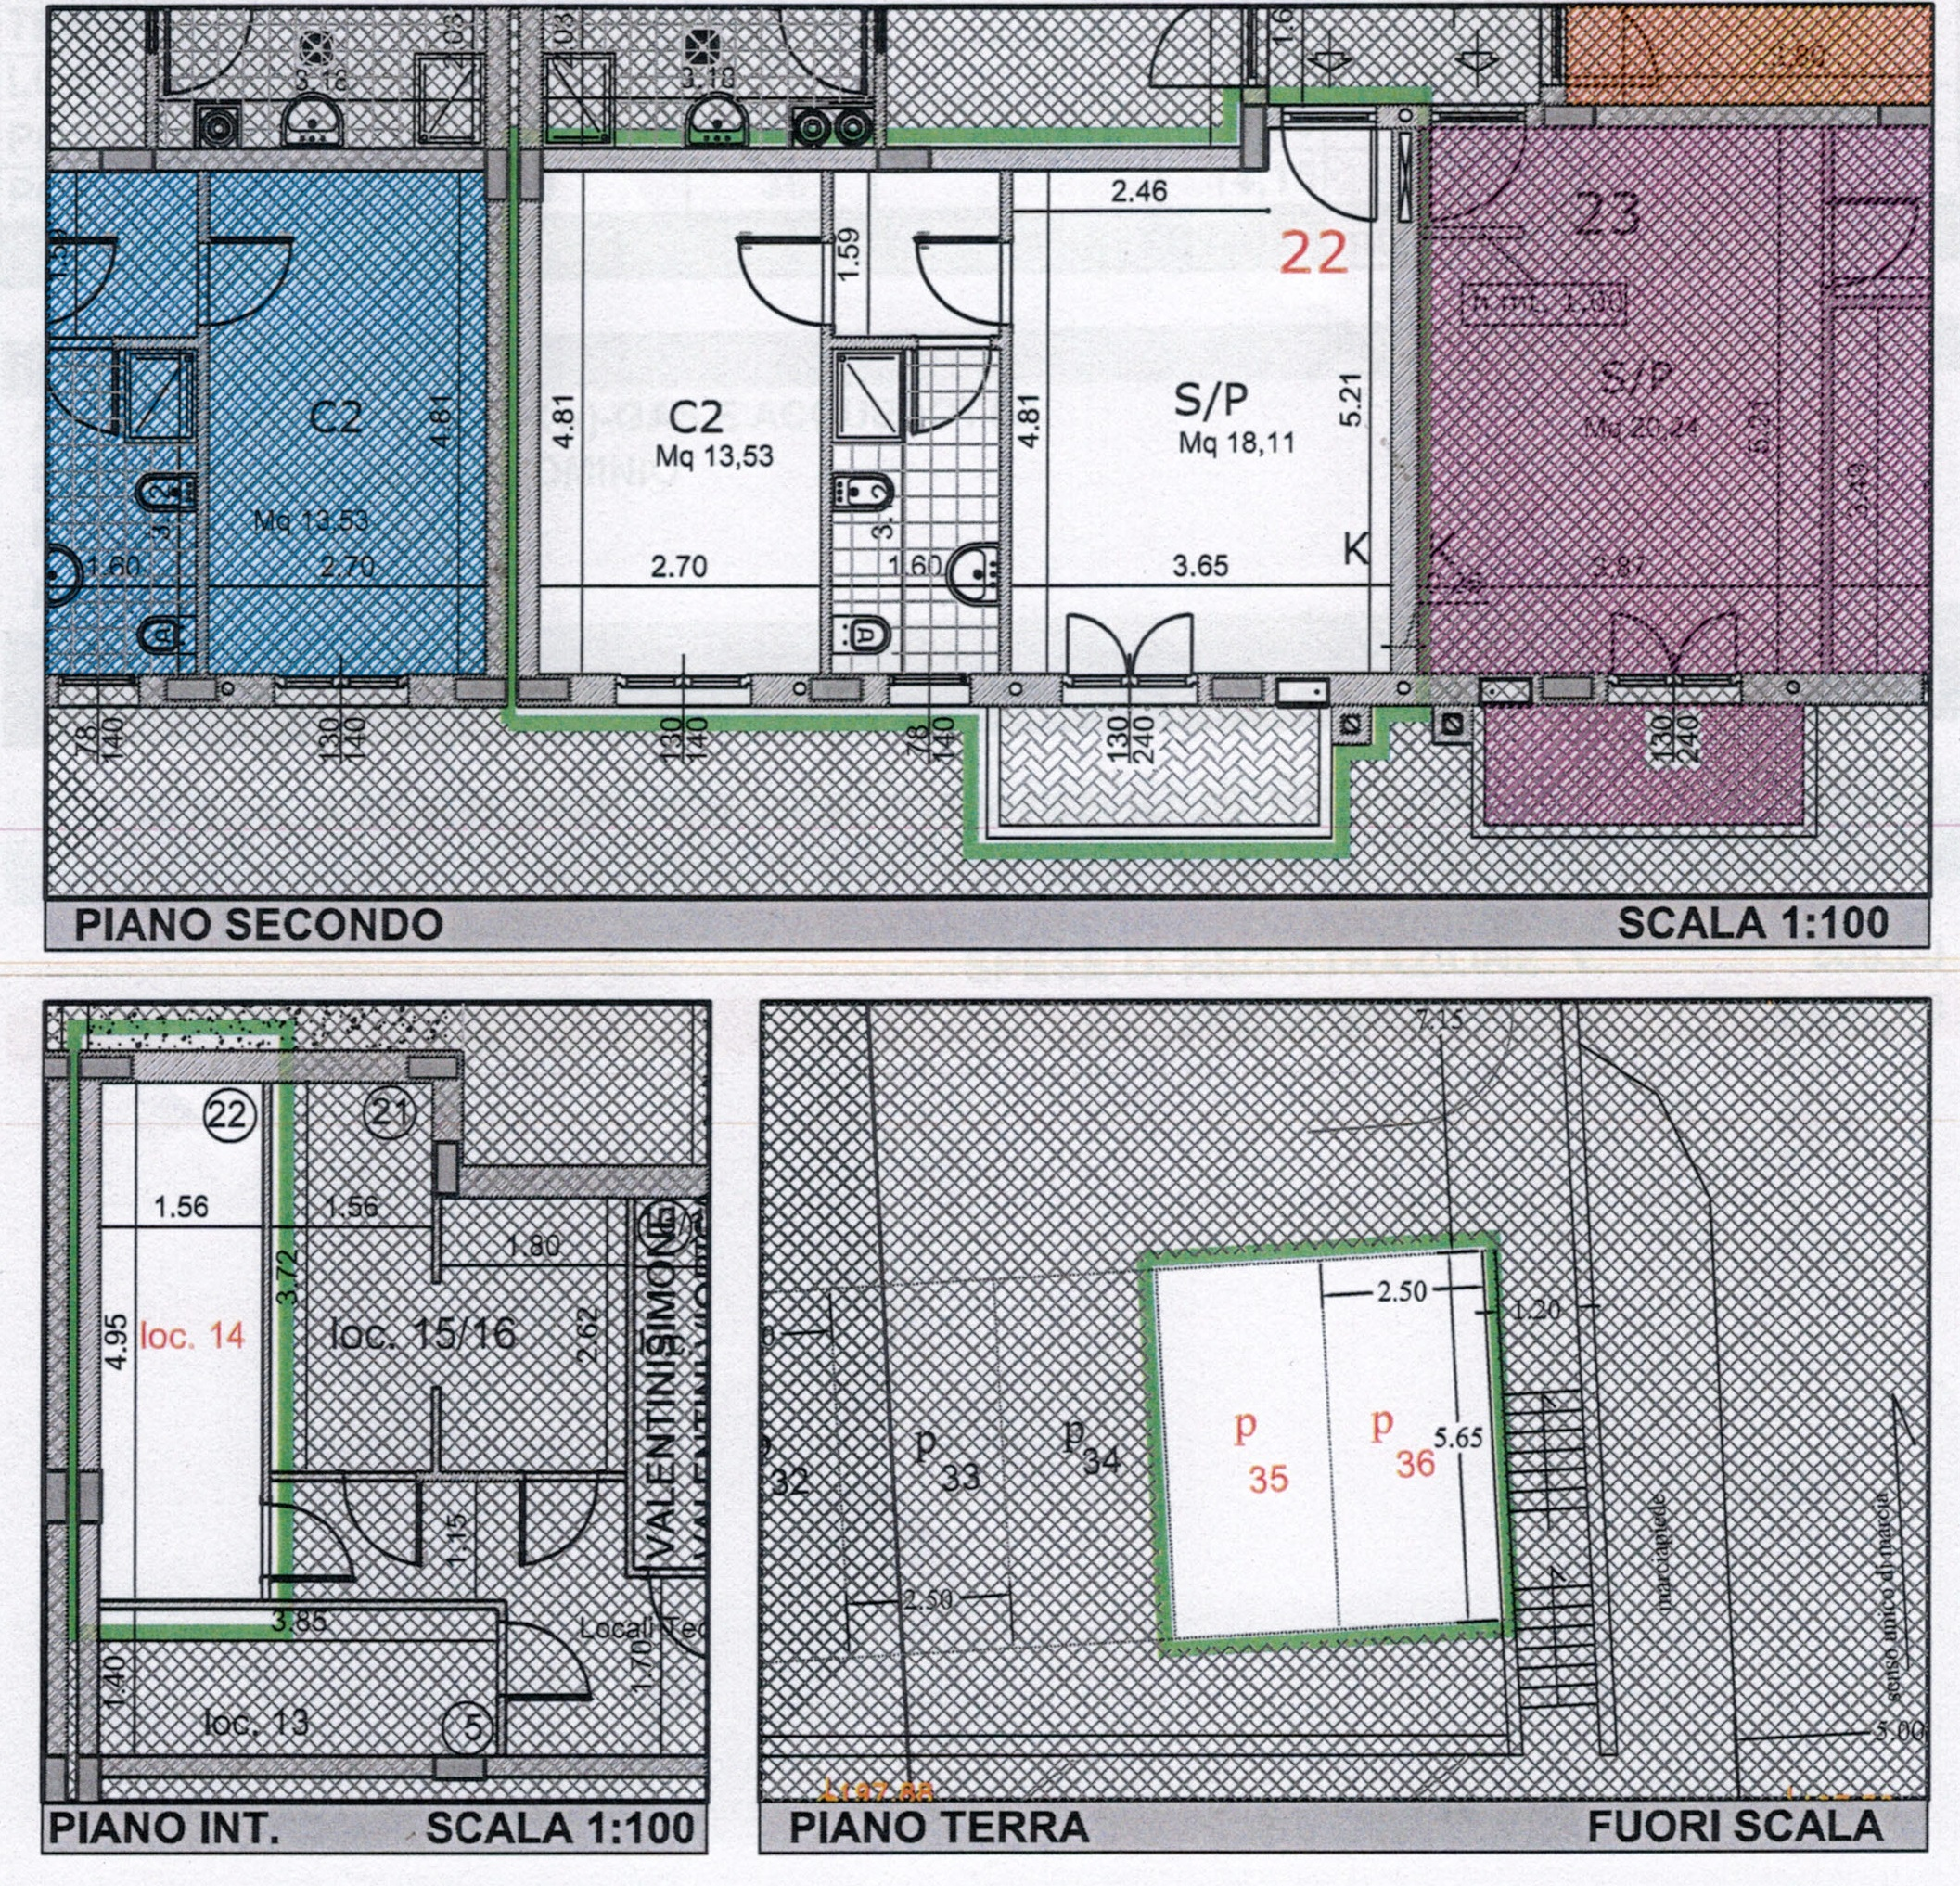 Plan 4/4 for ref. 839